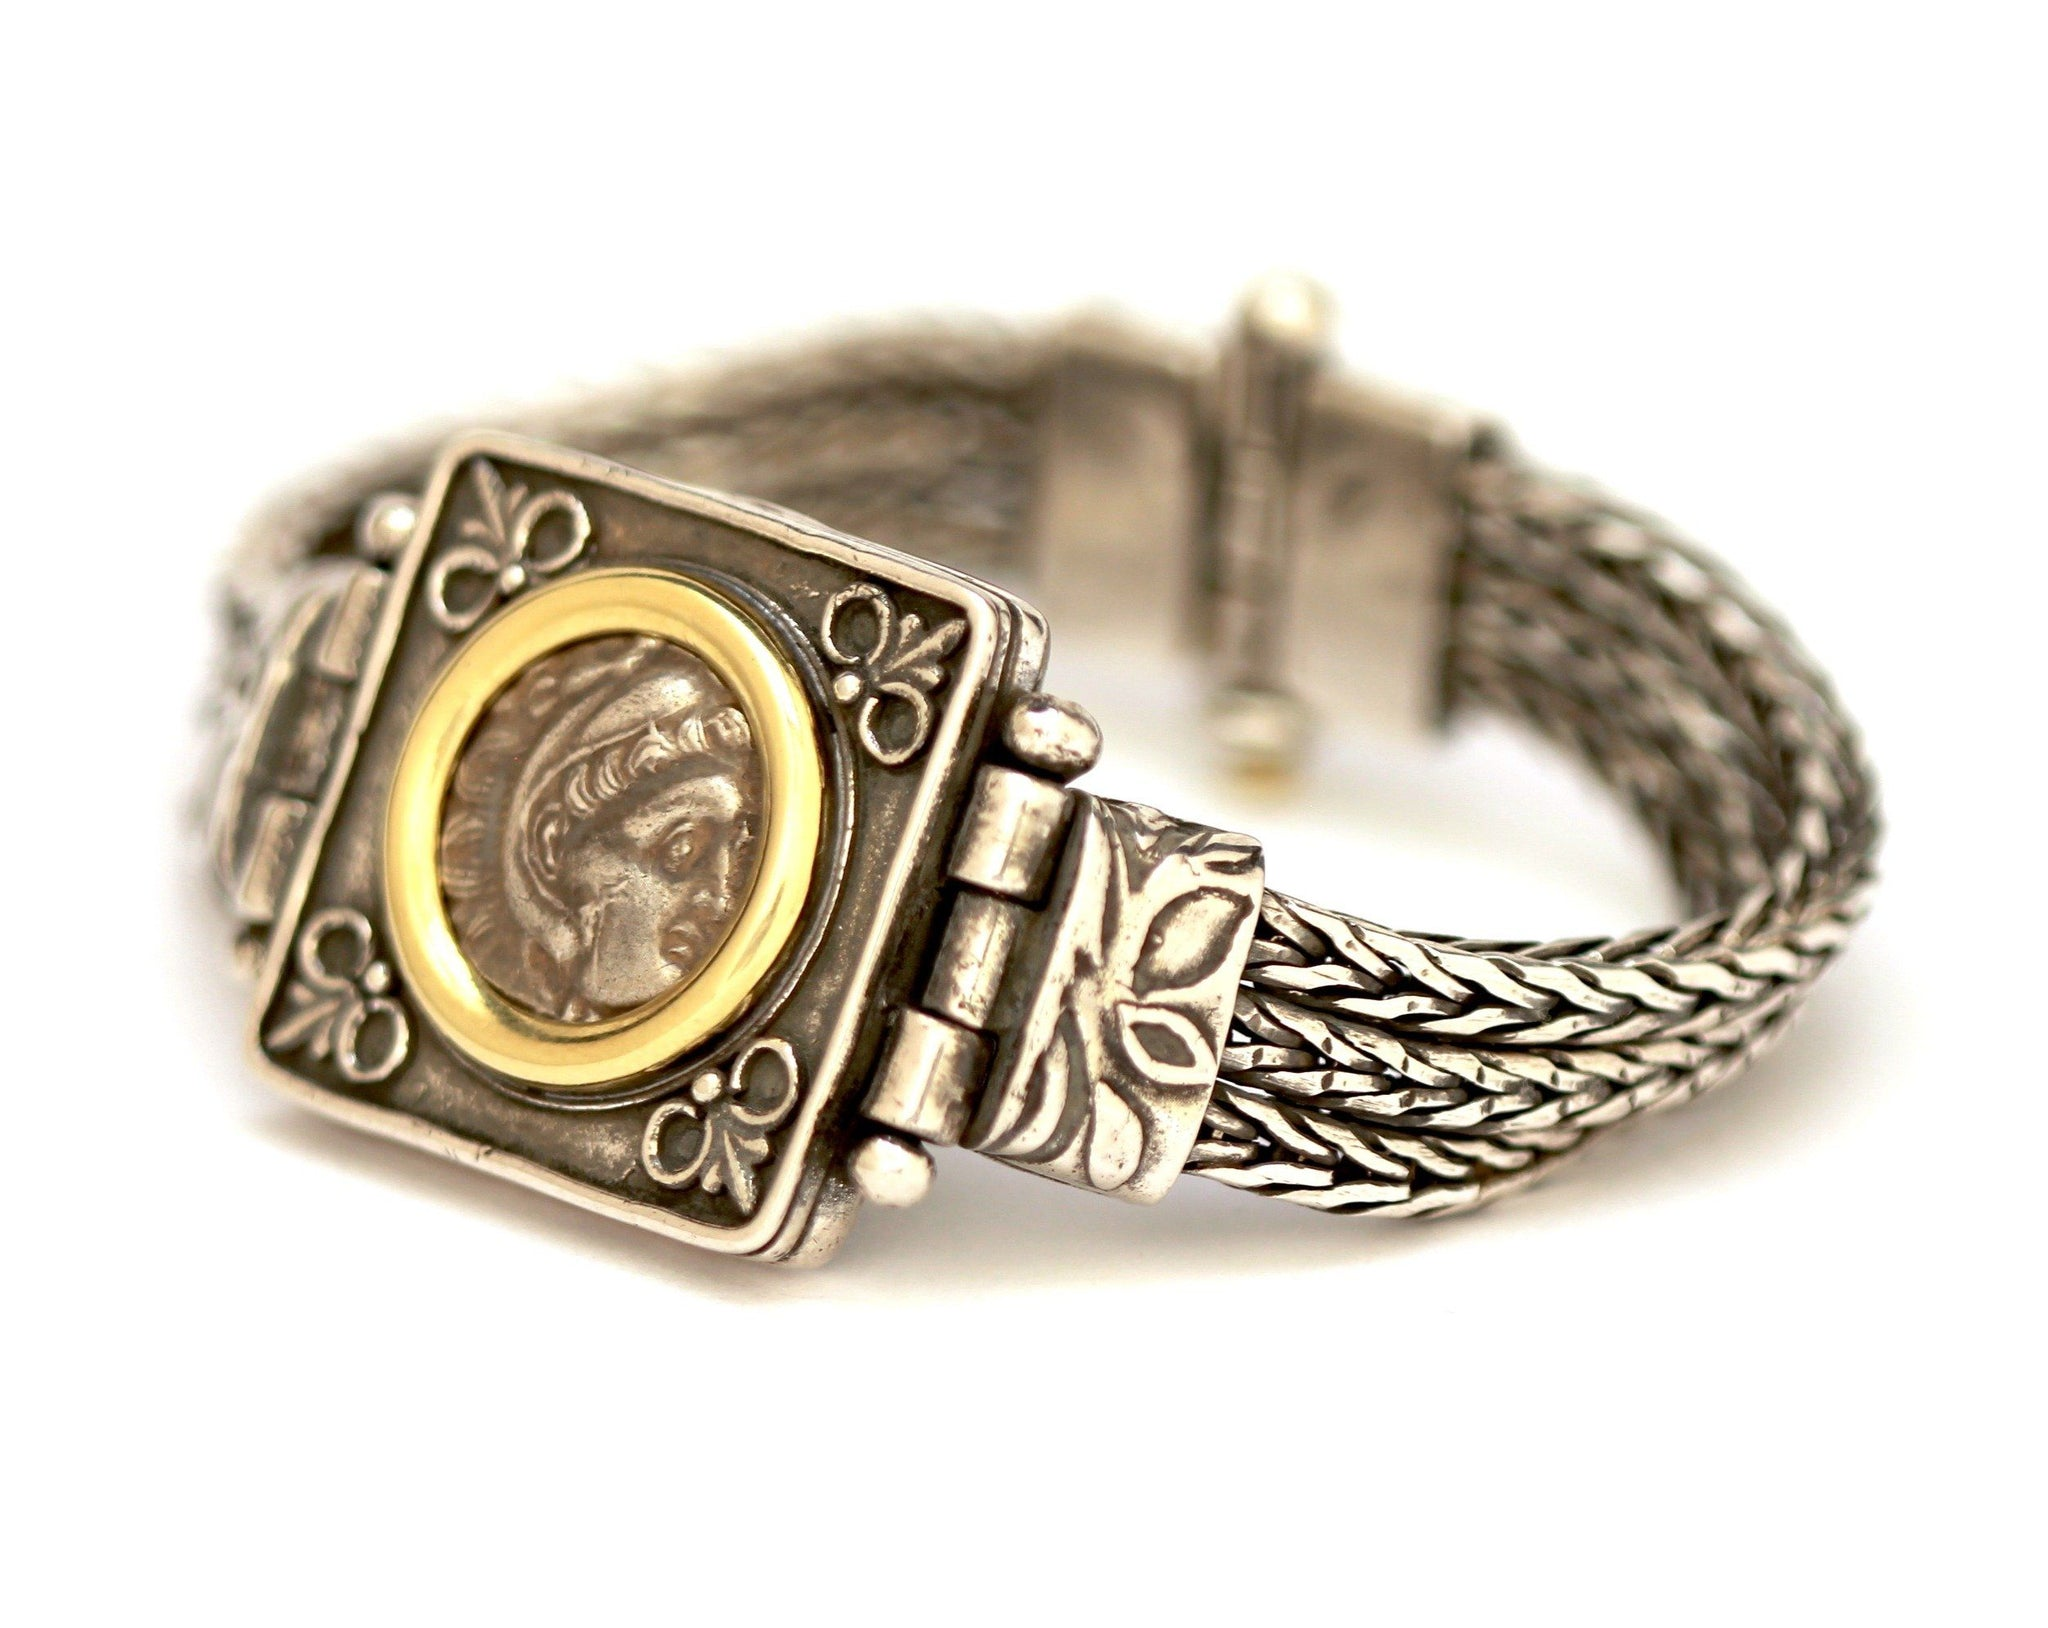 Alexander the Great Bracelet, 14K Gold and Sterling Silver, Genuine Ancient Coin, with Certificate  ID13082 - Erez Ancient Coin Jewelry, ancient coin jewelry, men jewelry, genuine ancient coins, made in the US